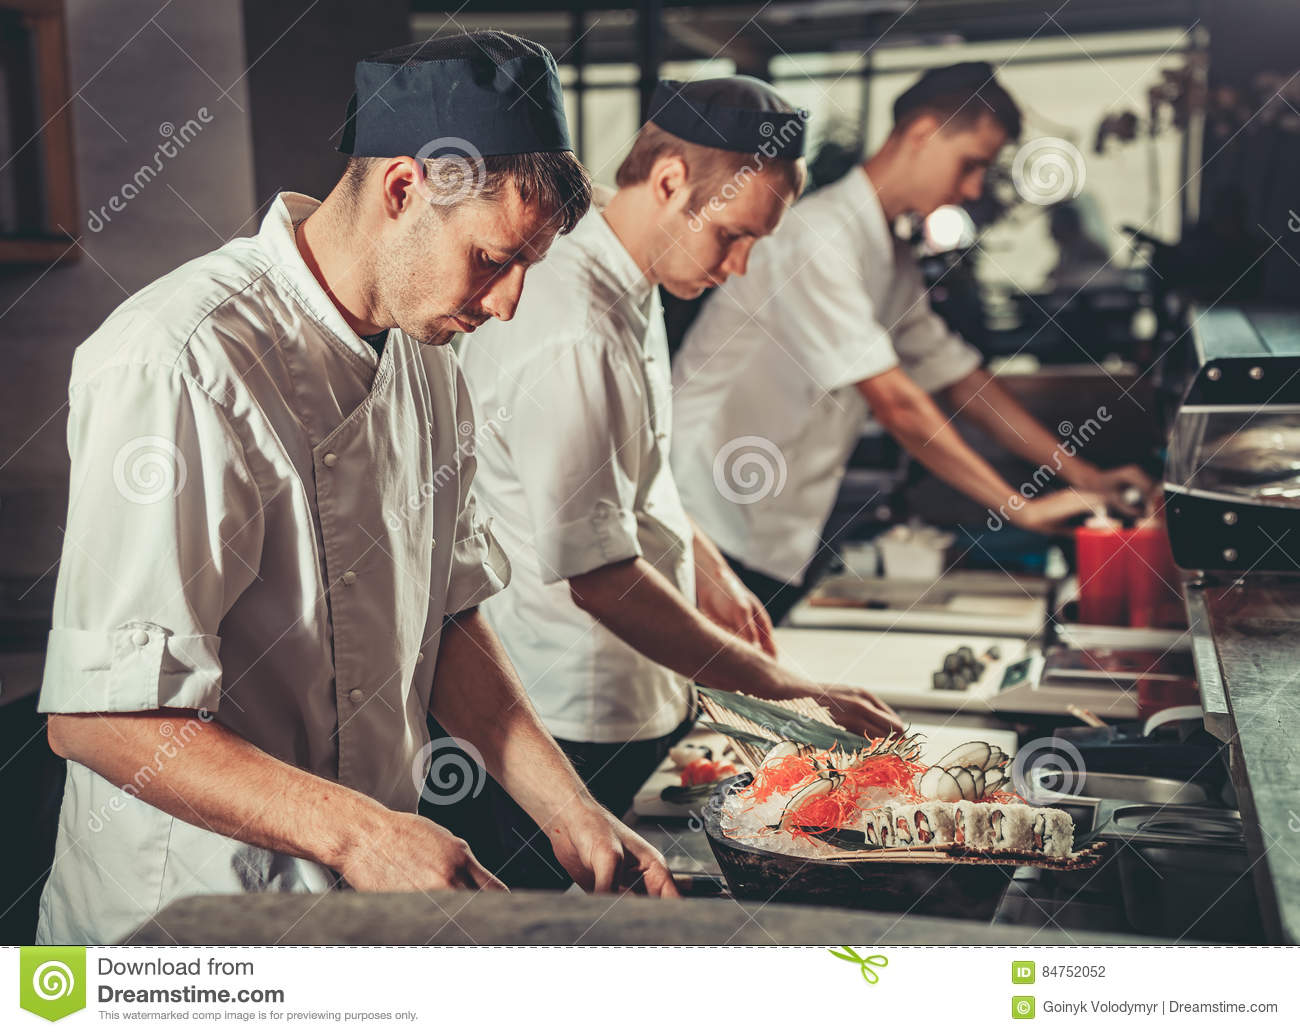 Busy Restaurant Kitchen busy chefs at work in the restaurant kitchen stock photo - image